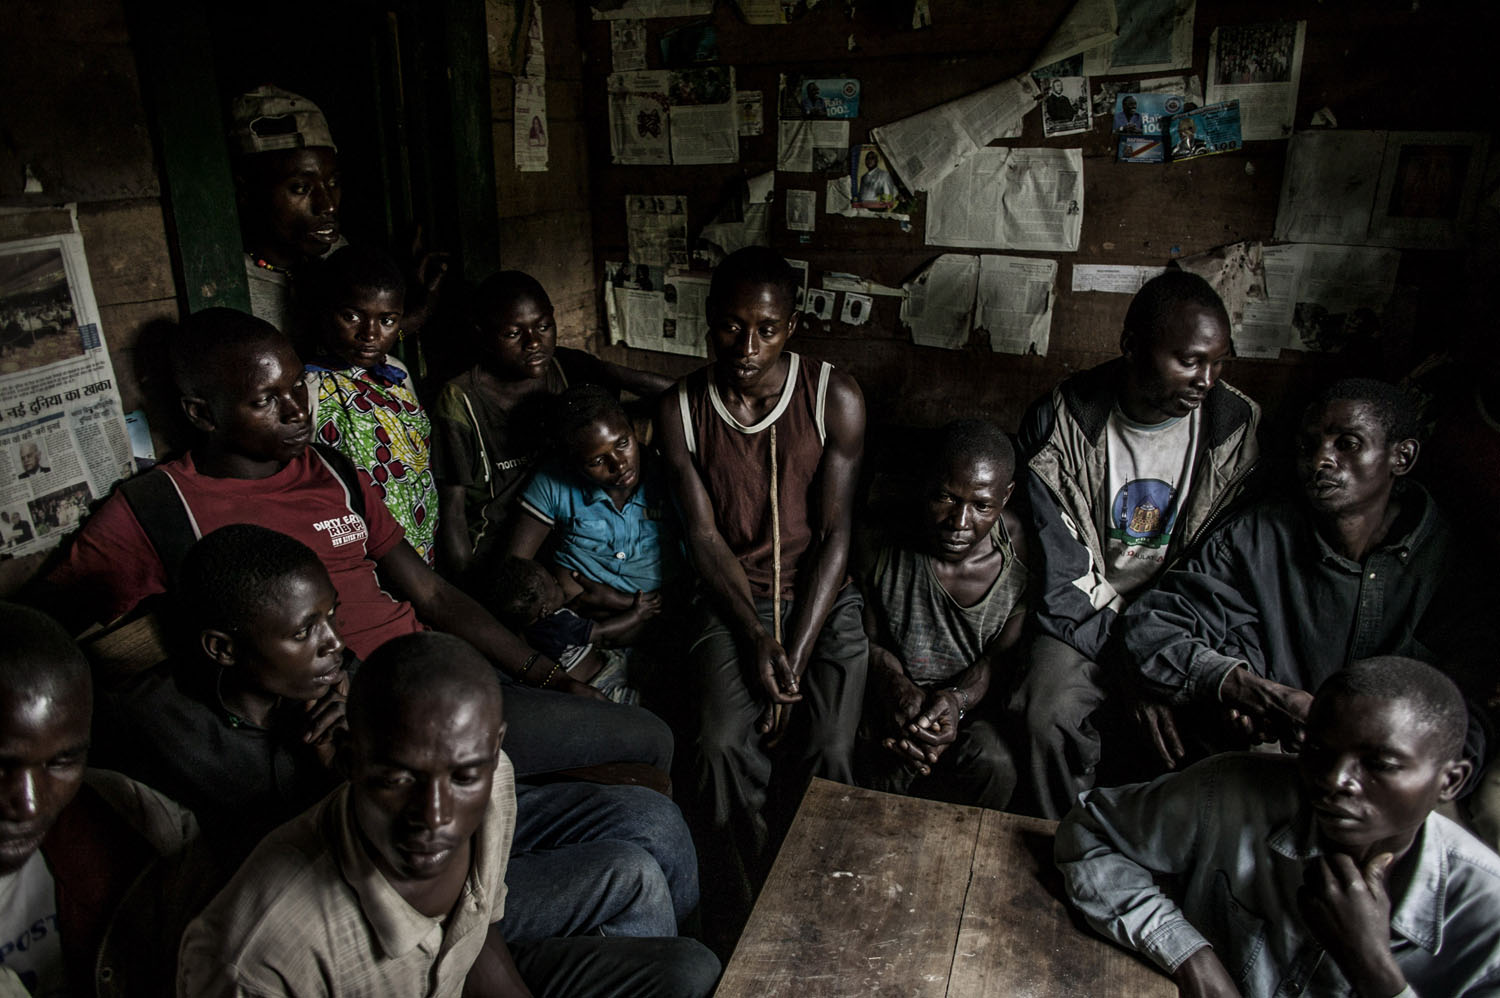 The men of the Kanyabugoyi family gather inside their family home in the village of Rugare, which was recently wrest from M-23 rebels by the Congolese army. The family fled their home in August after being continually harassed by M-23 rebels. When they returned on Monday, 28 October, they found their home had been broken into and many of their belongings by M-23 forces.